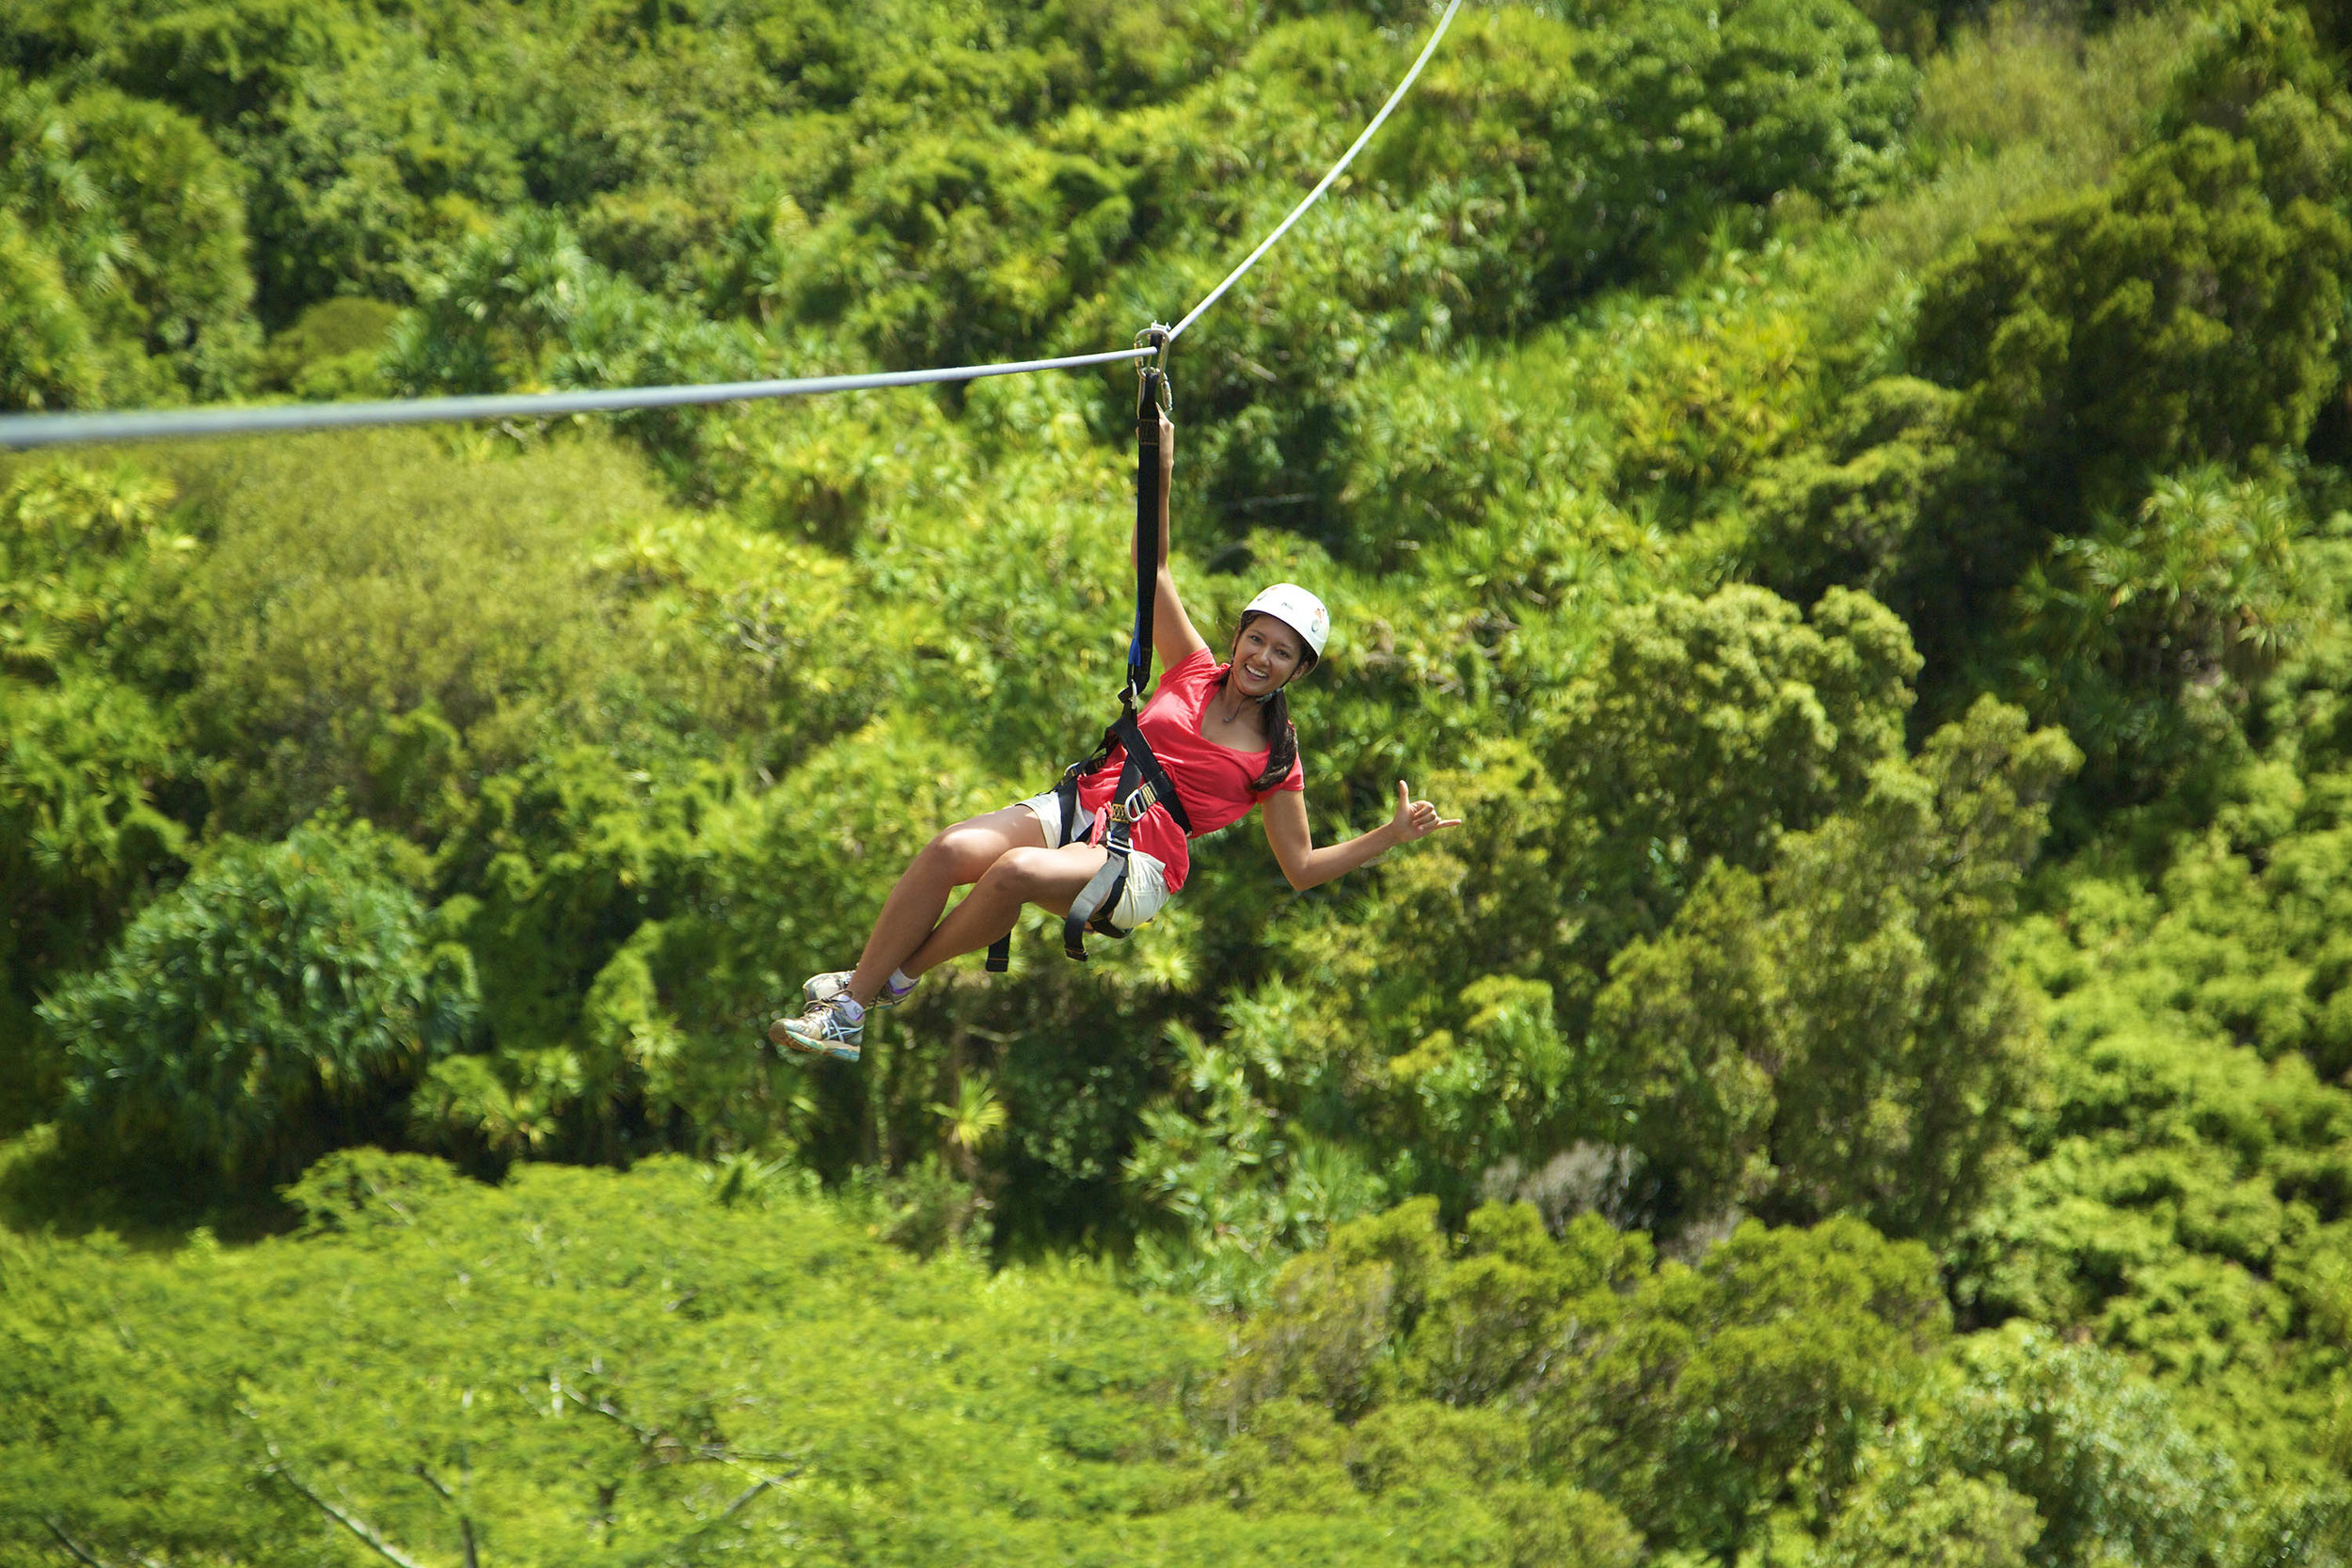 Sharyl Boren on zip line.jpg